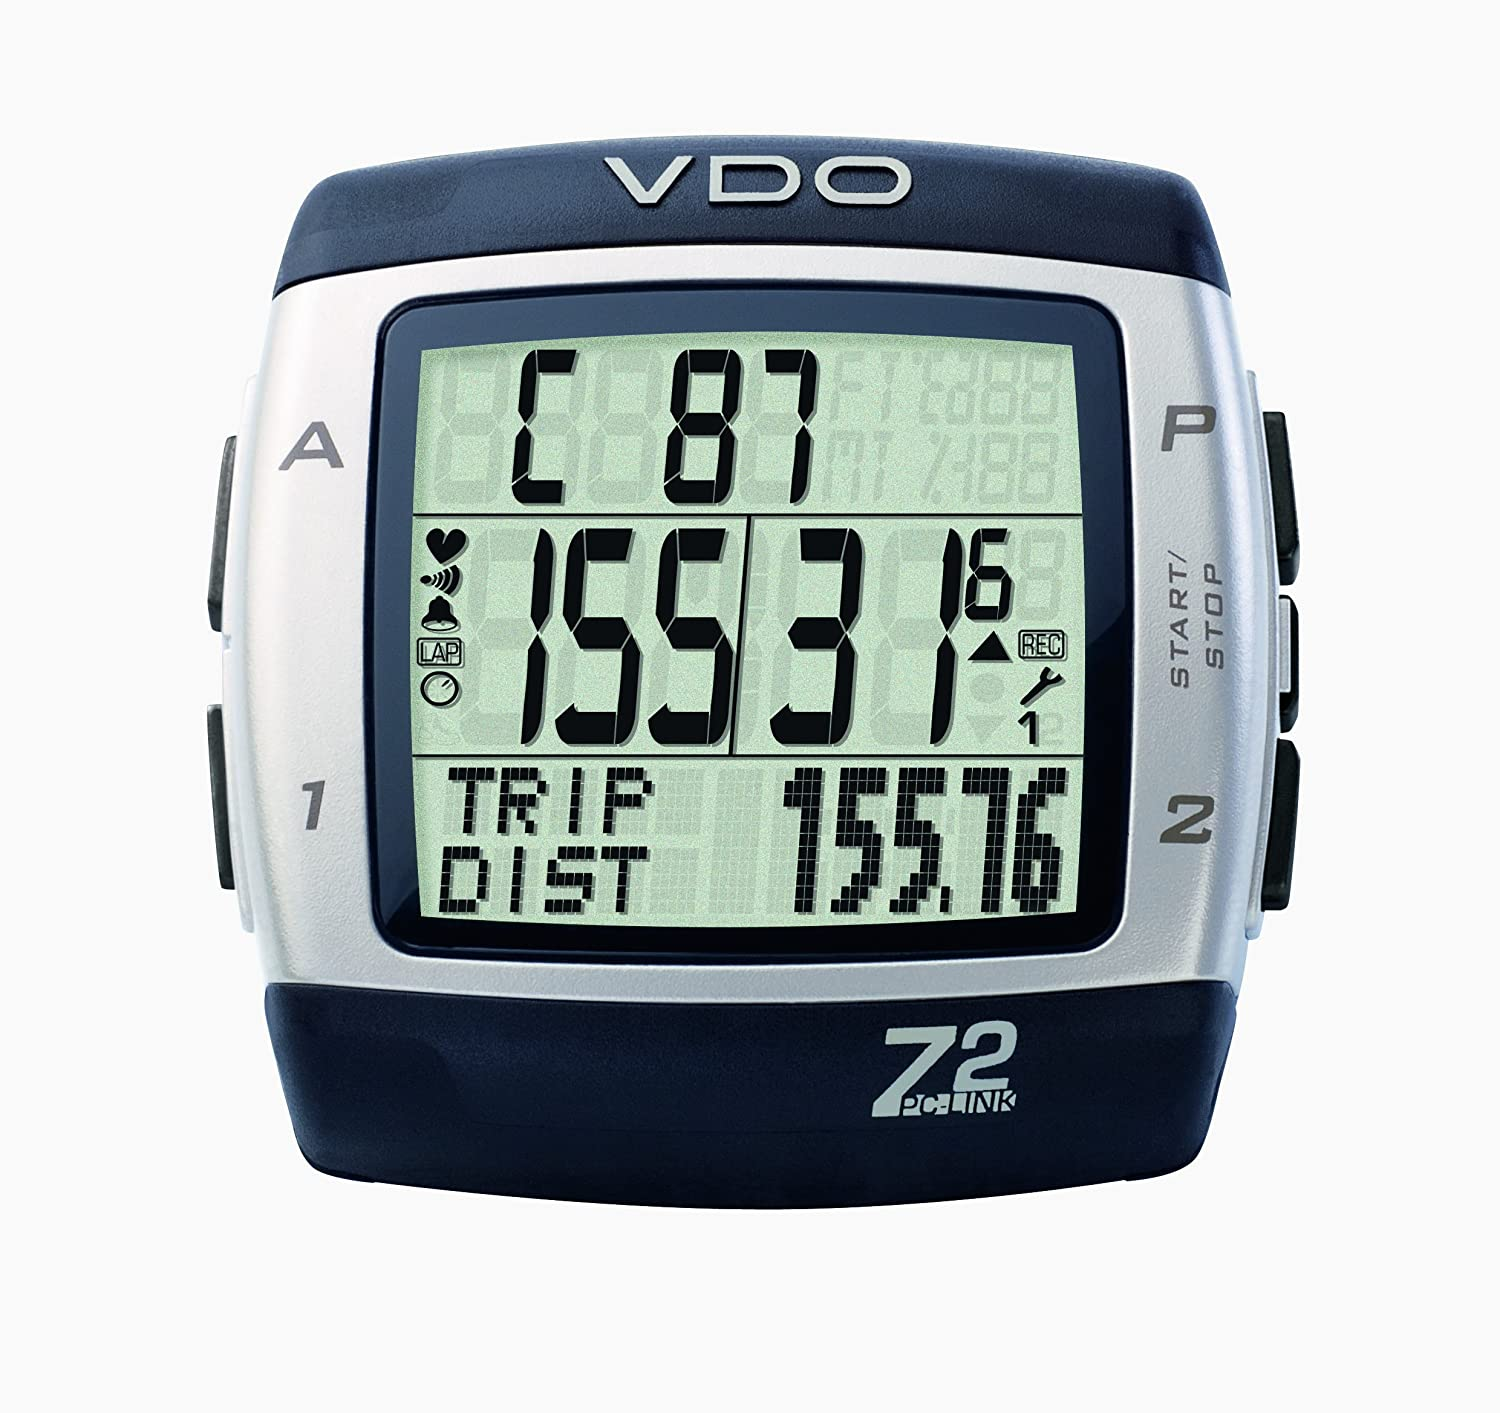 VDO Z2PC Link Heart Rate Monitor with 日本未発売 PC Computer 内祝い and Sync Cycle